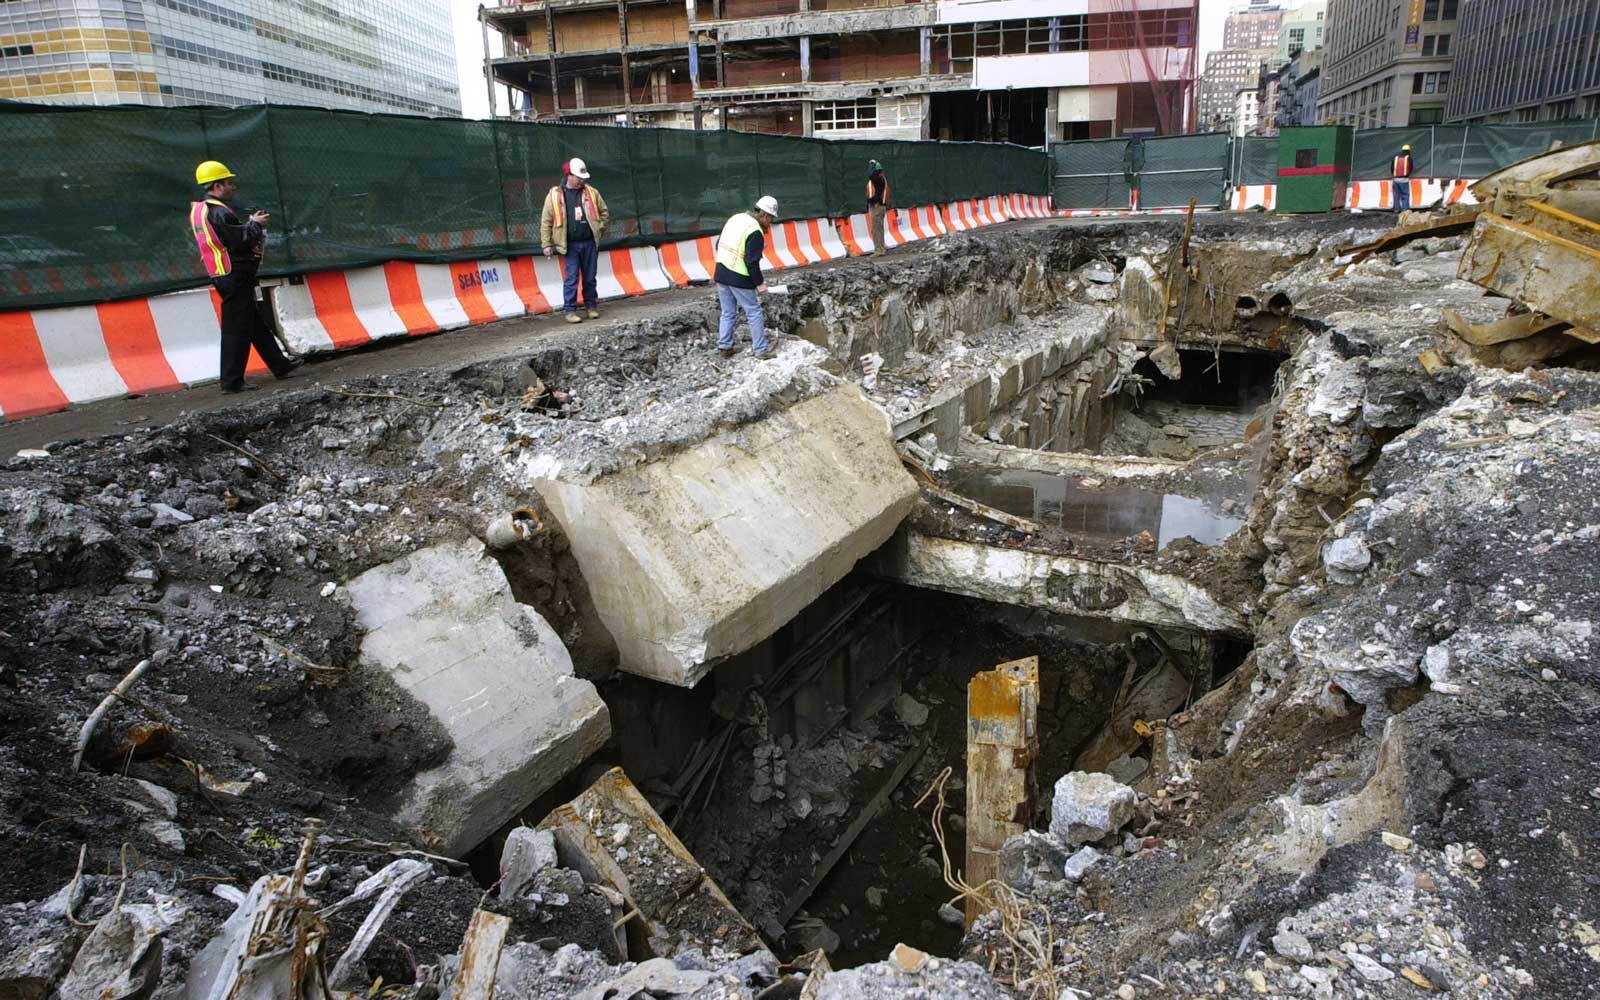 Workers look into the gaping hole near the Cortlandt St. station after the No. 1 and 9 subway lines collapsed under the demolished World Trade Center.